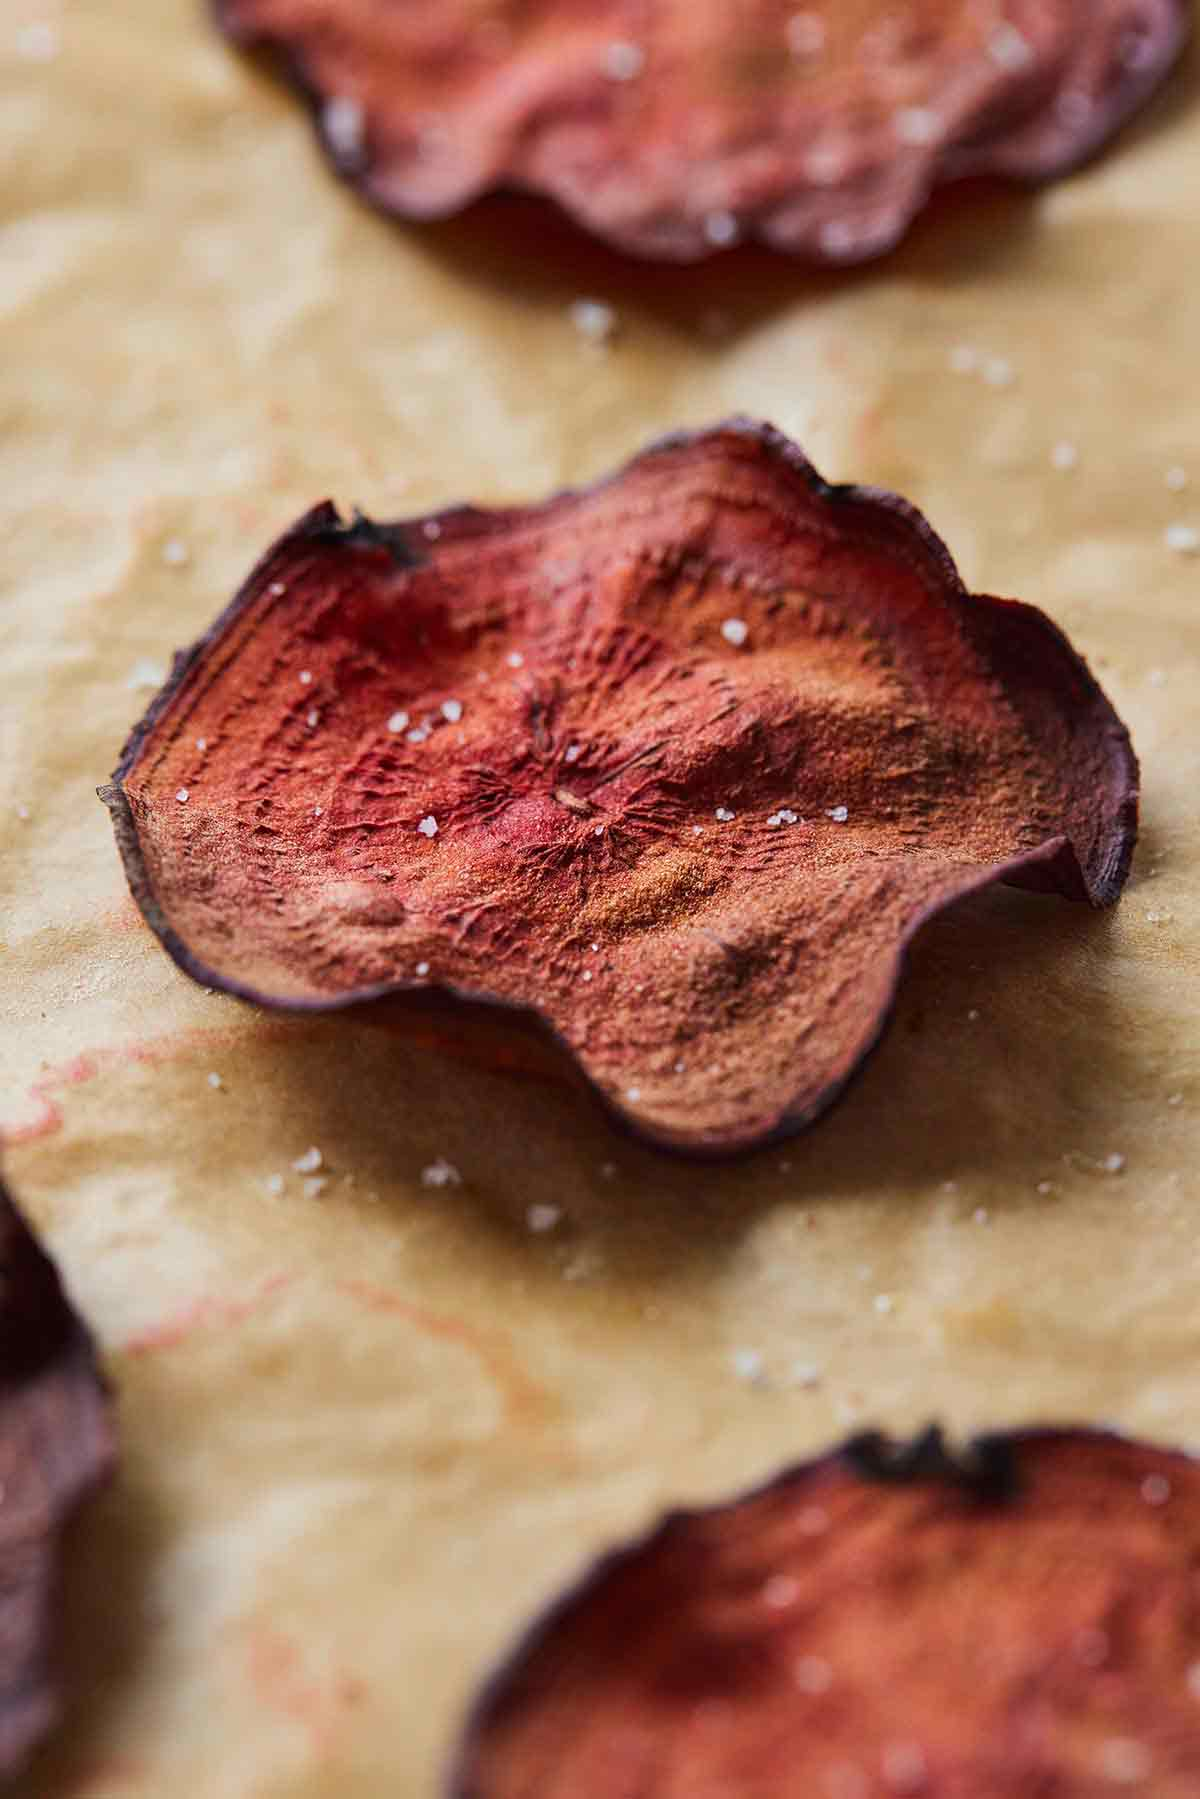 Close up of a single beet in focus with sea salt sprinkles on top.